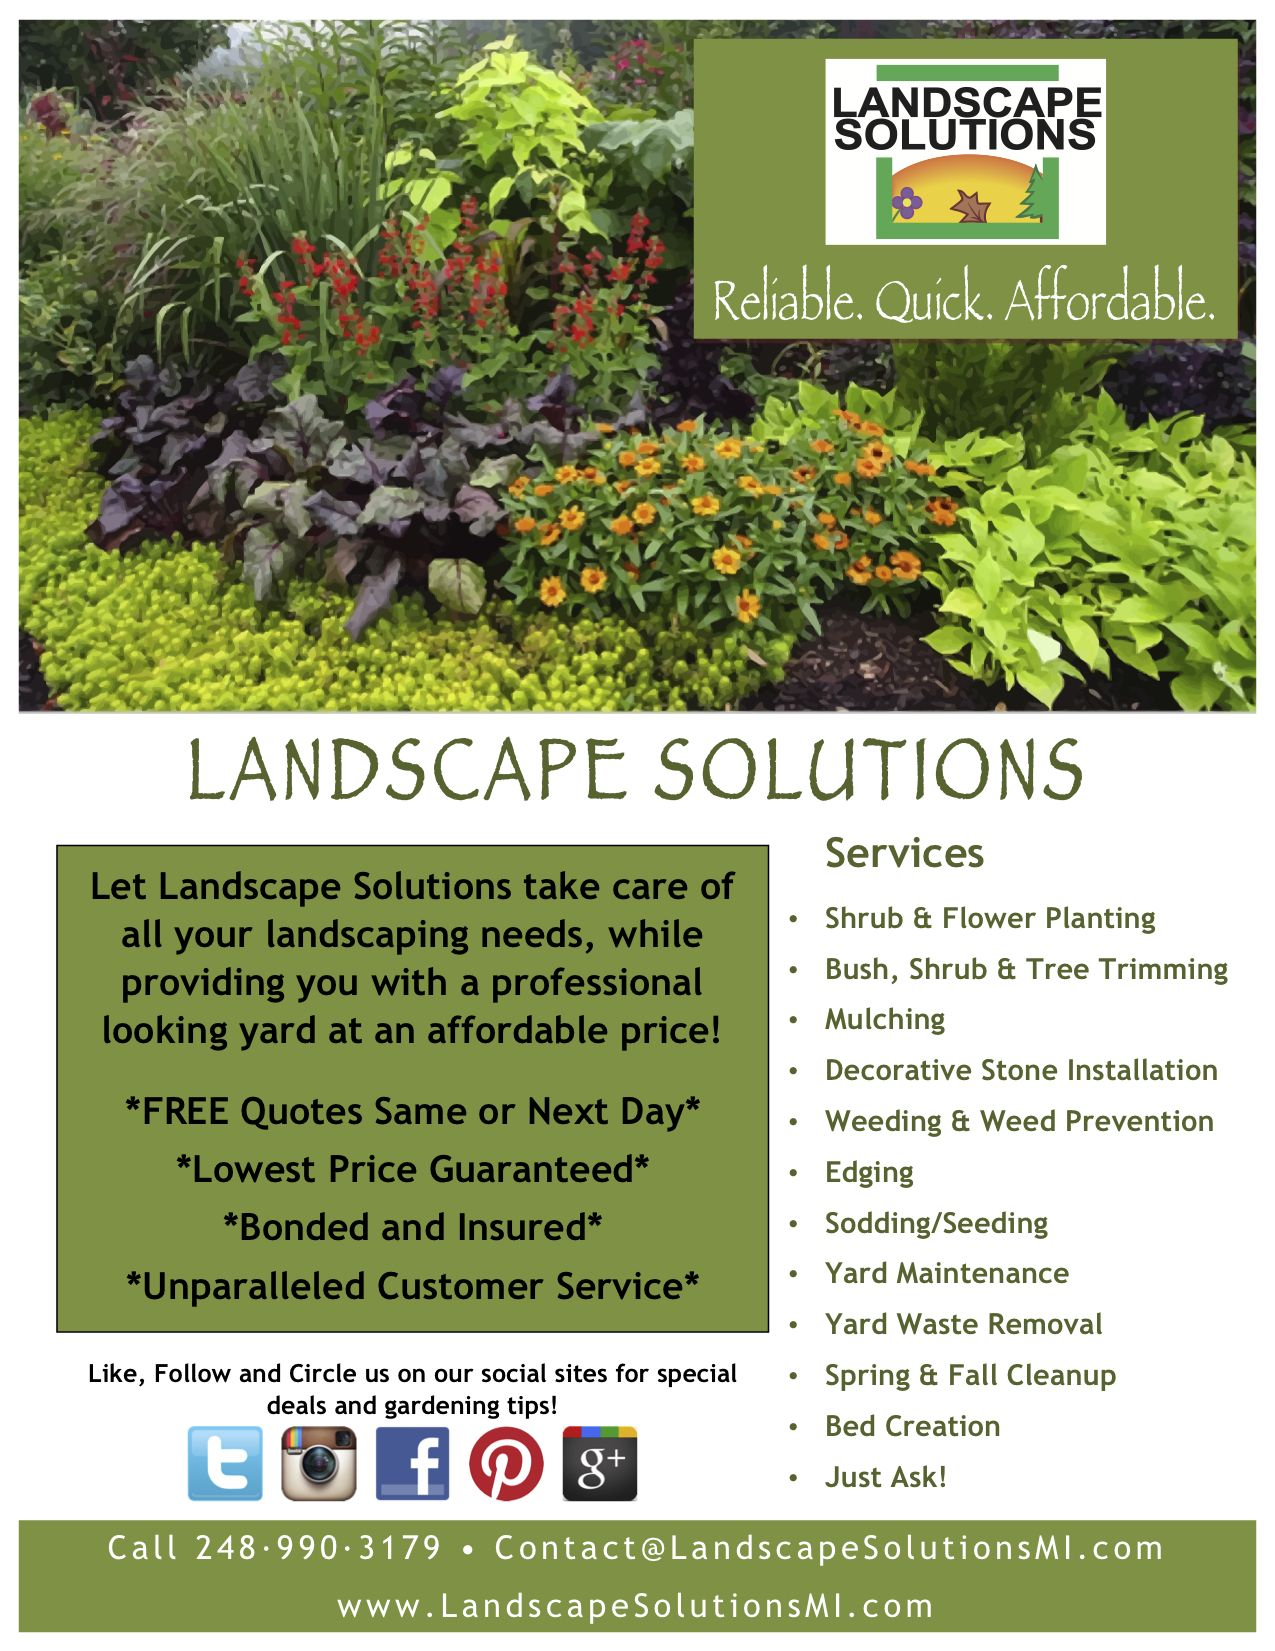 New Flyers For Landscape Solutions Going Around This 400 x 300